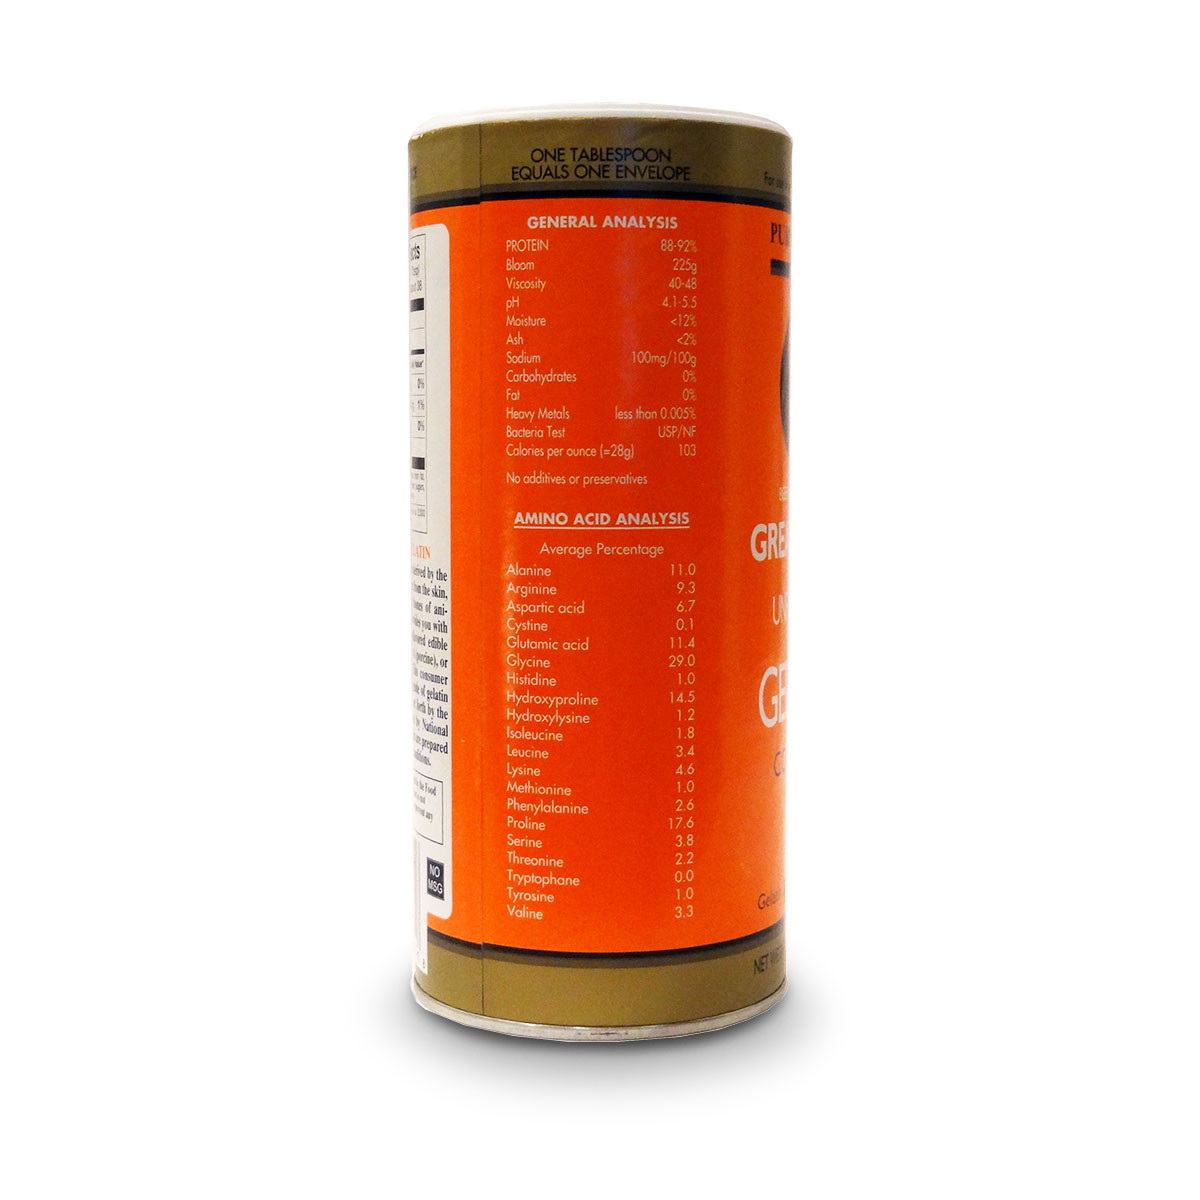 Label view of amino acid analysis and general analysis of Great Lakes Pure Protein Kosher Beef Unflavored Gelatin.